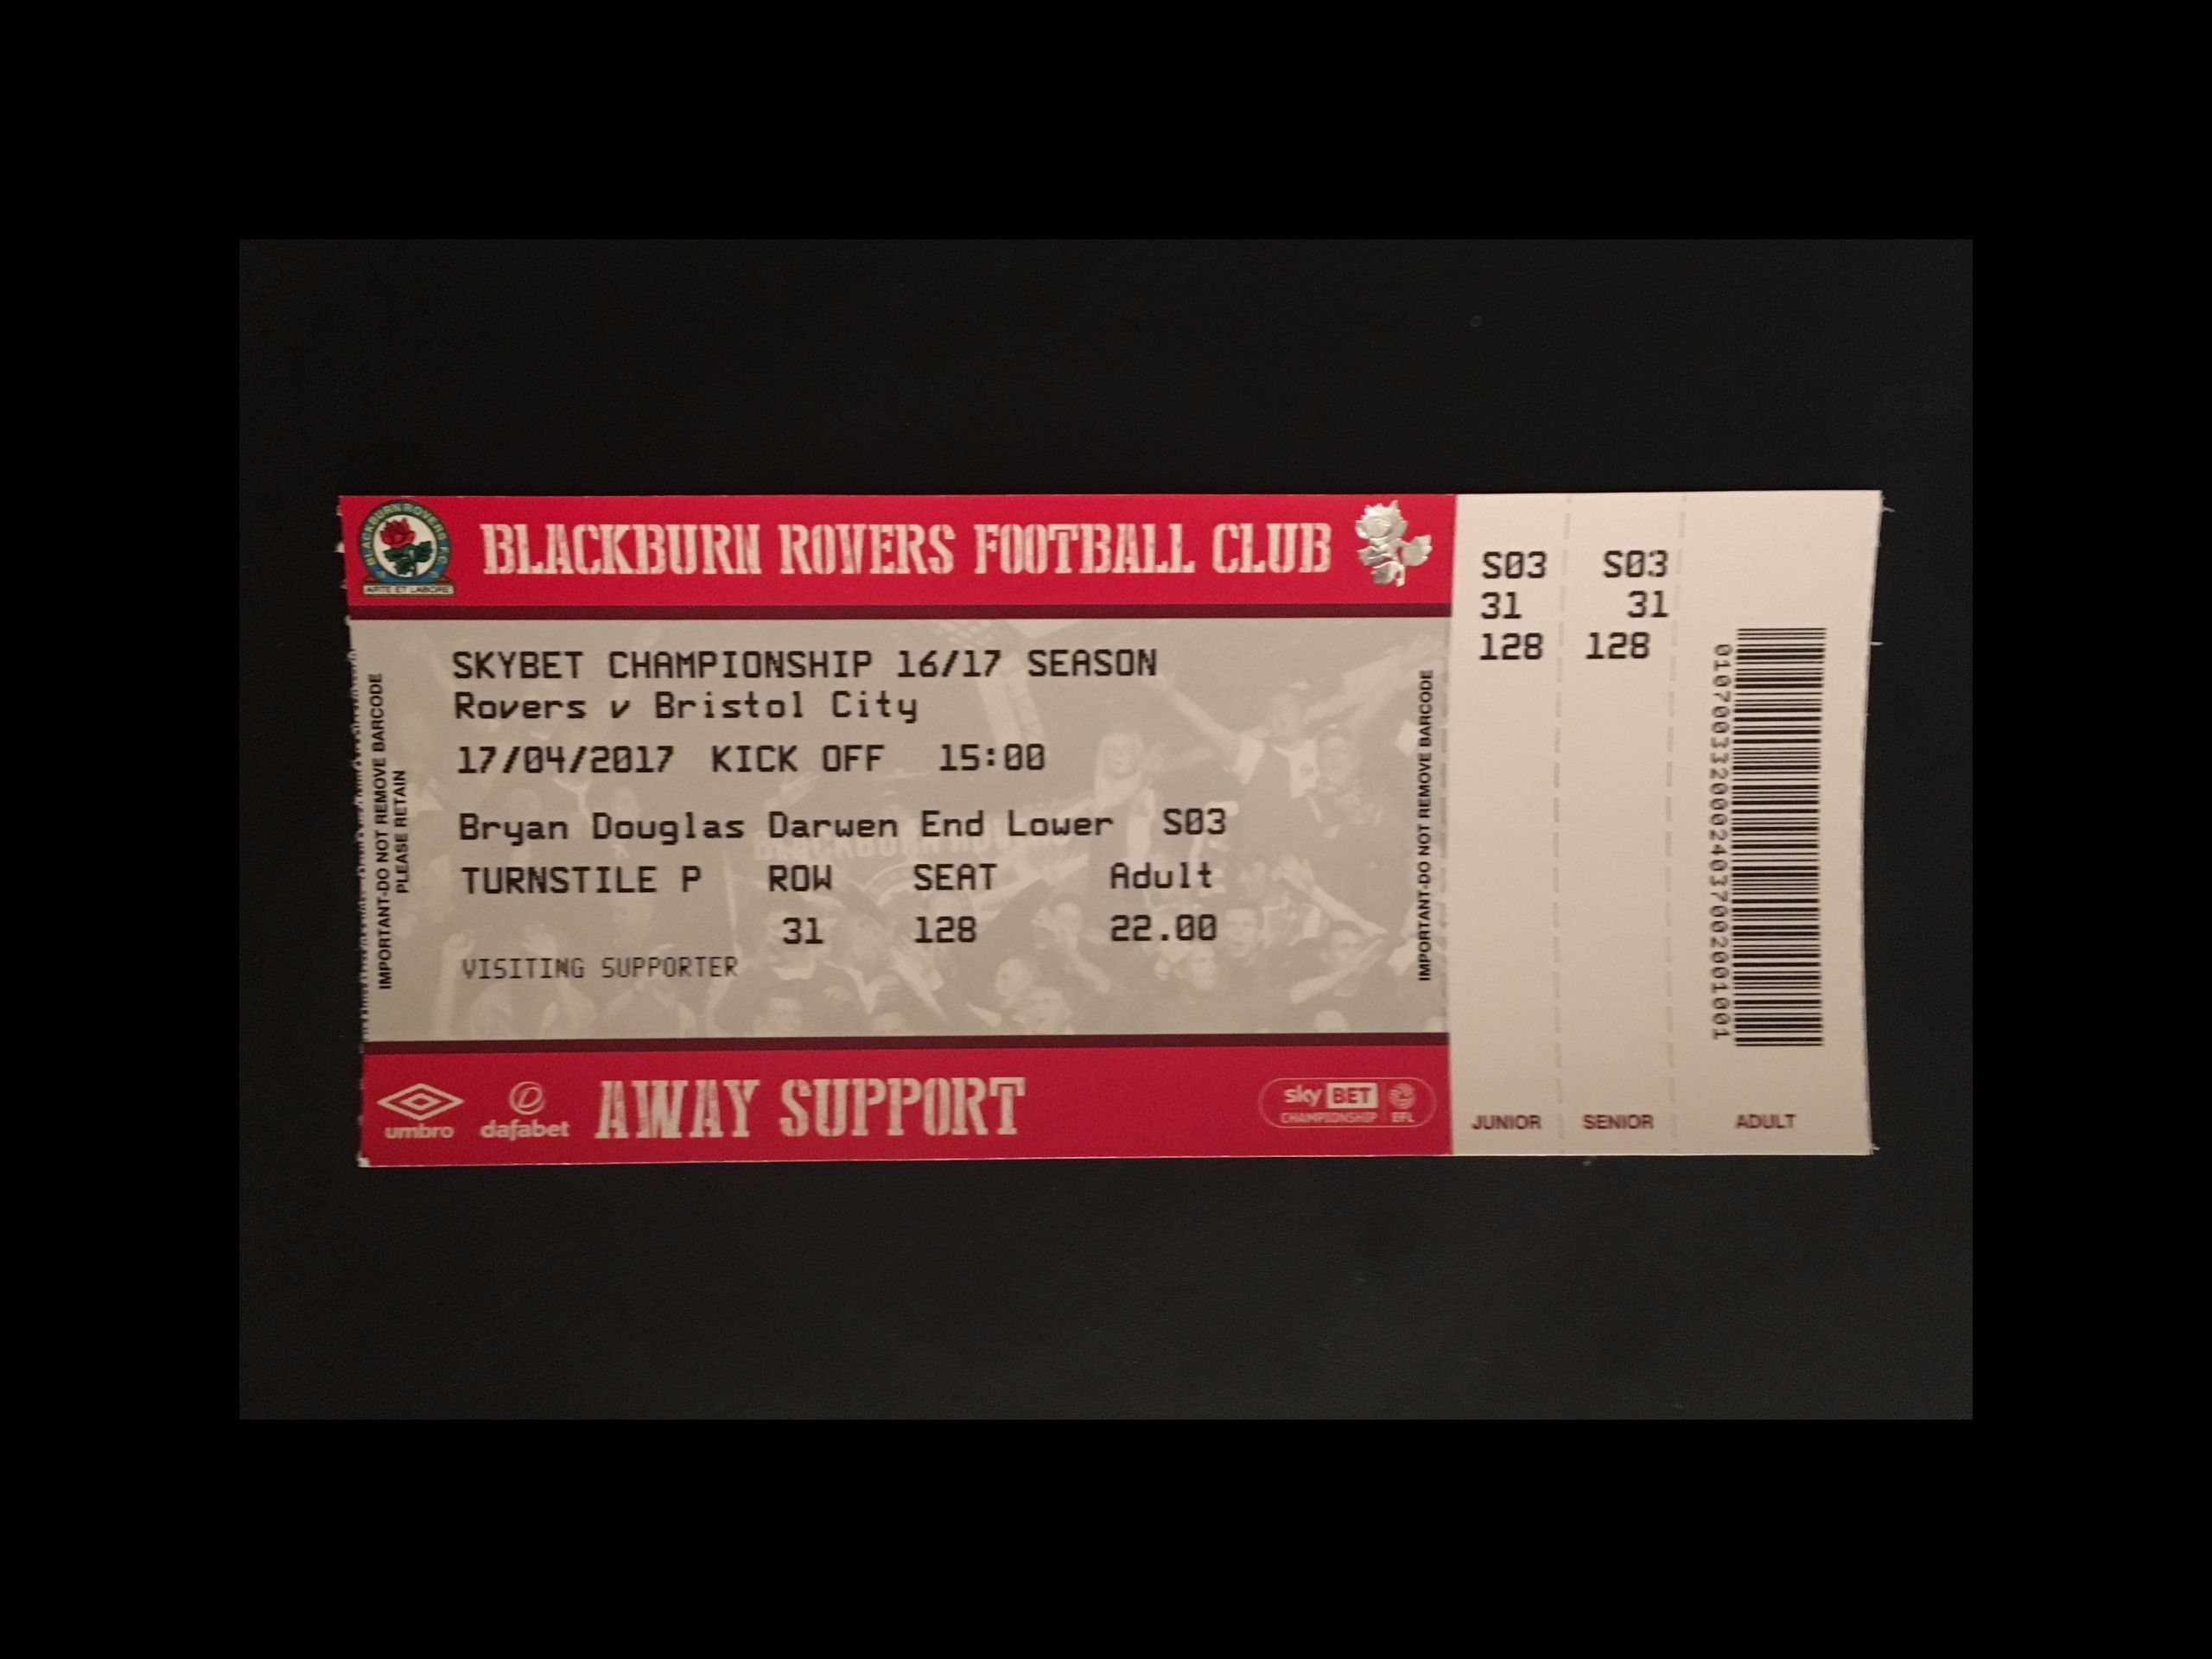 Blackburn Rovers v Bristol City 17-04-17 Ticket